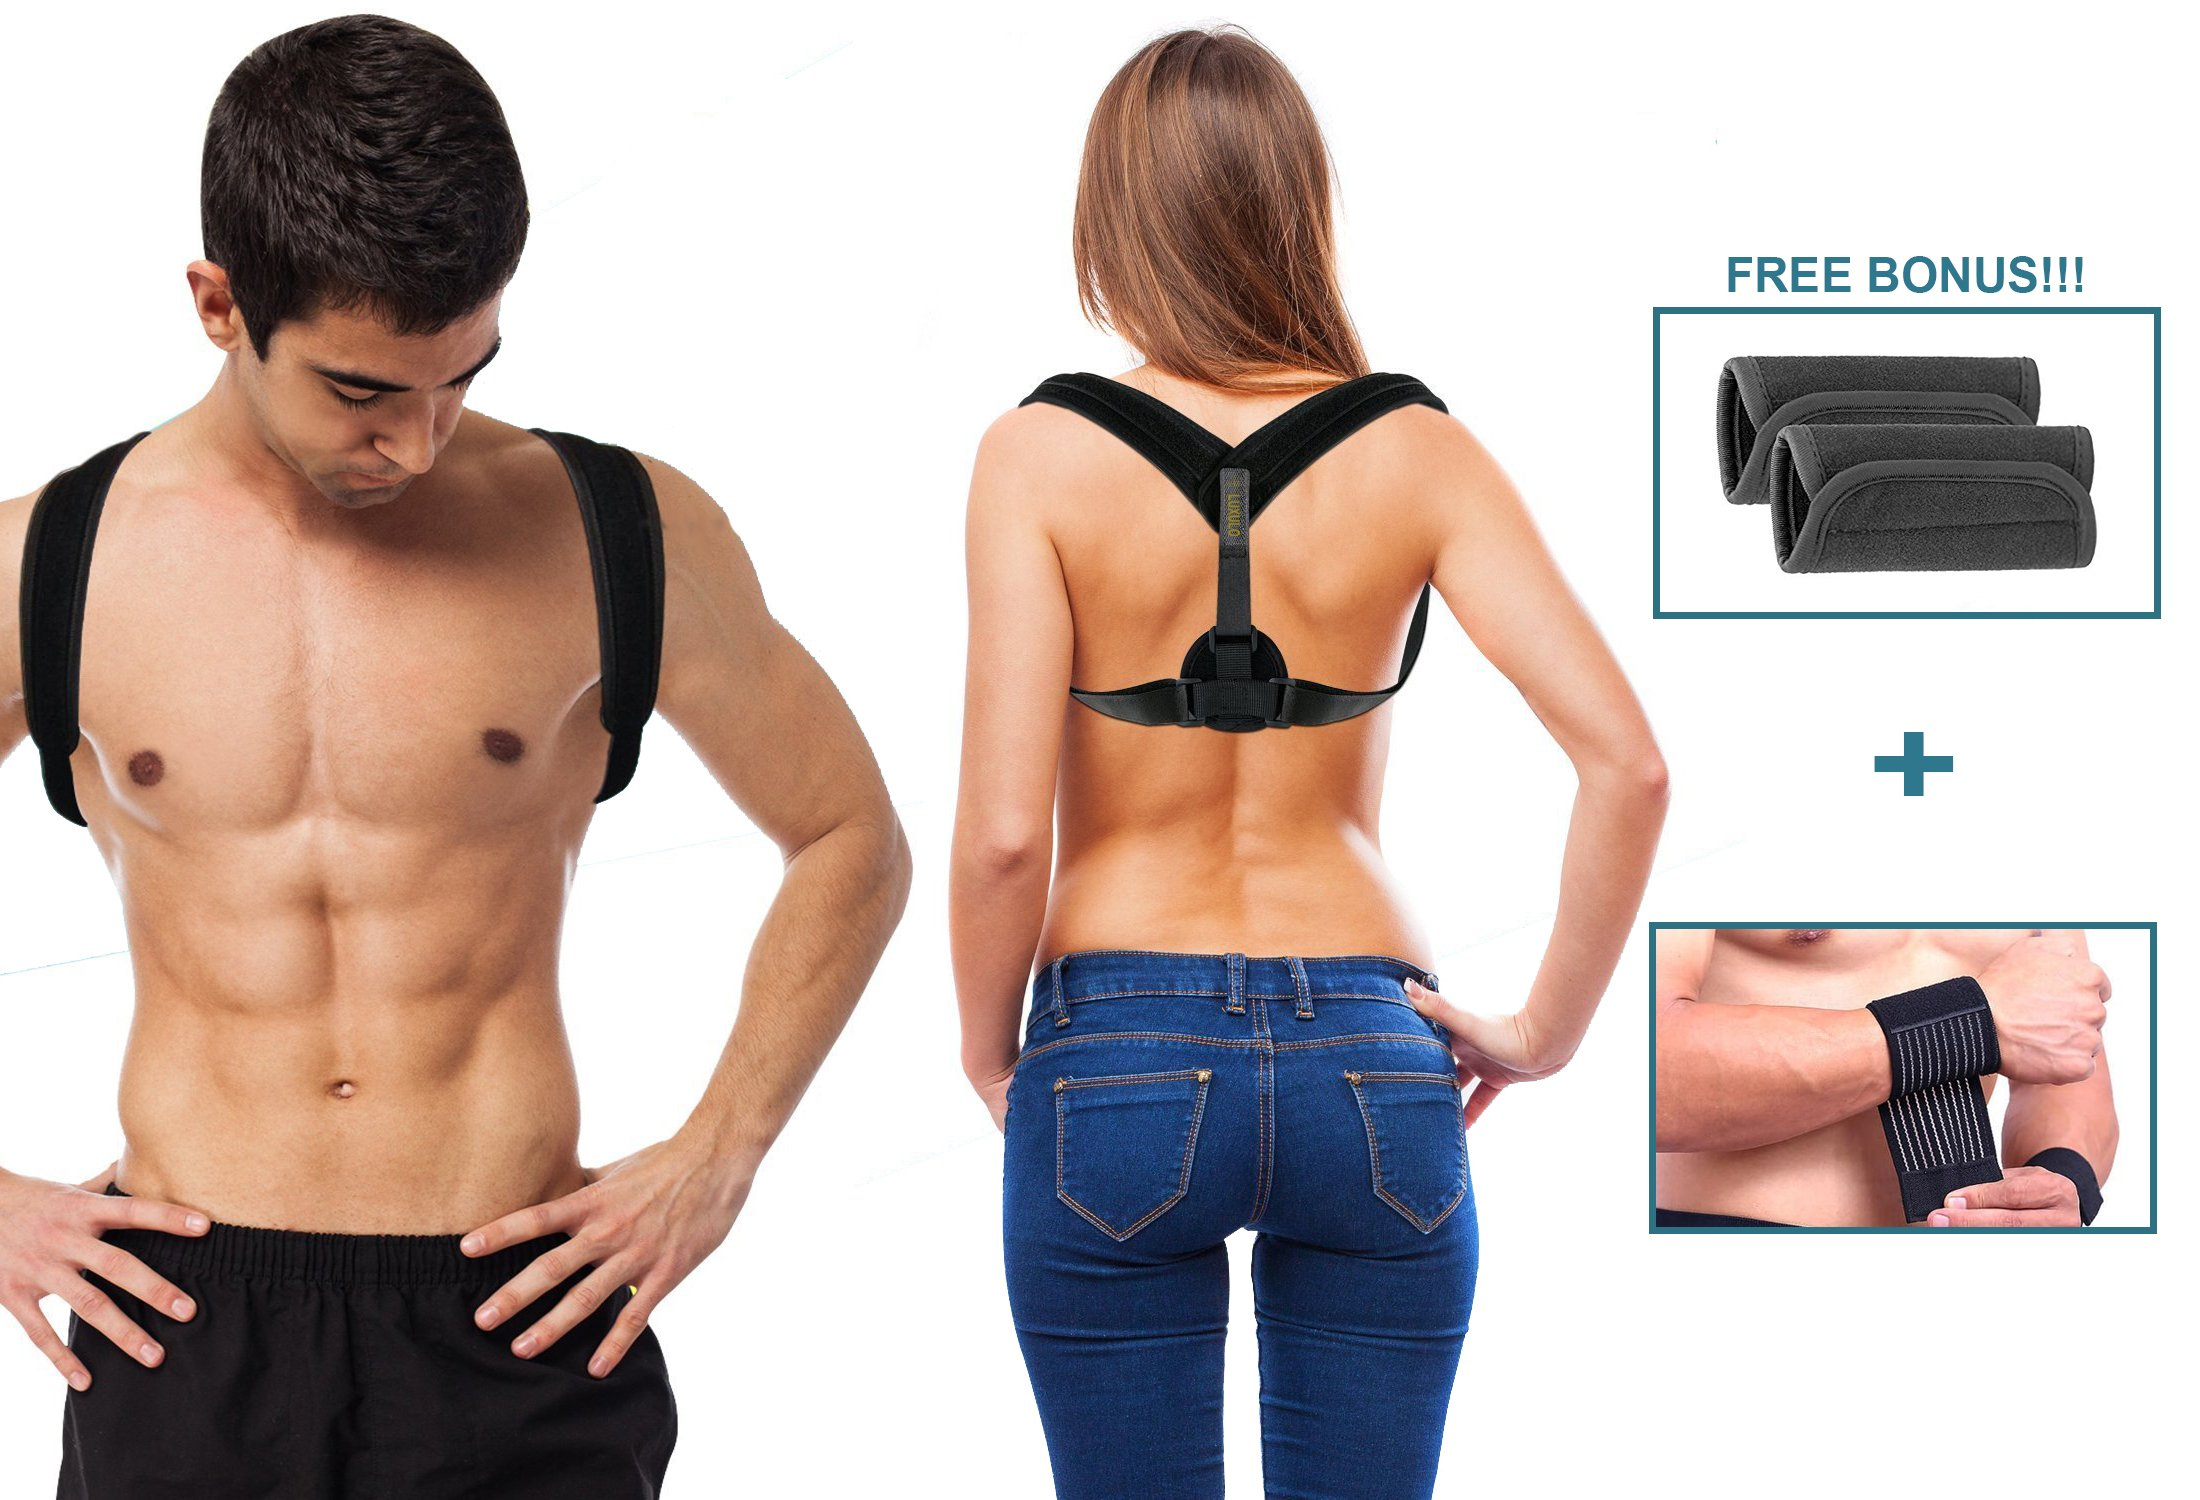 Posture Corrector for Men and Women, Effective, Comfortable Orthopedic Posture Brace for Slouching and Hunching, Adjustable, Good for Back and Neck Pain Relief